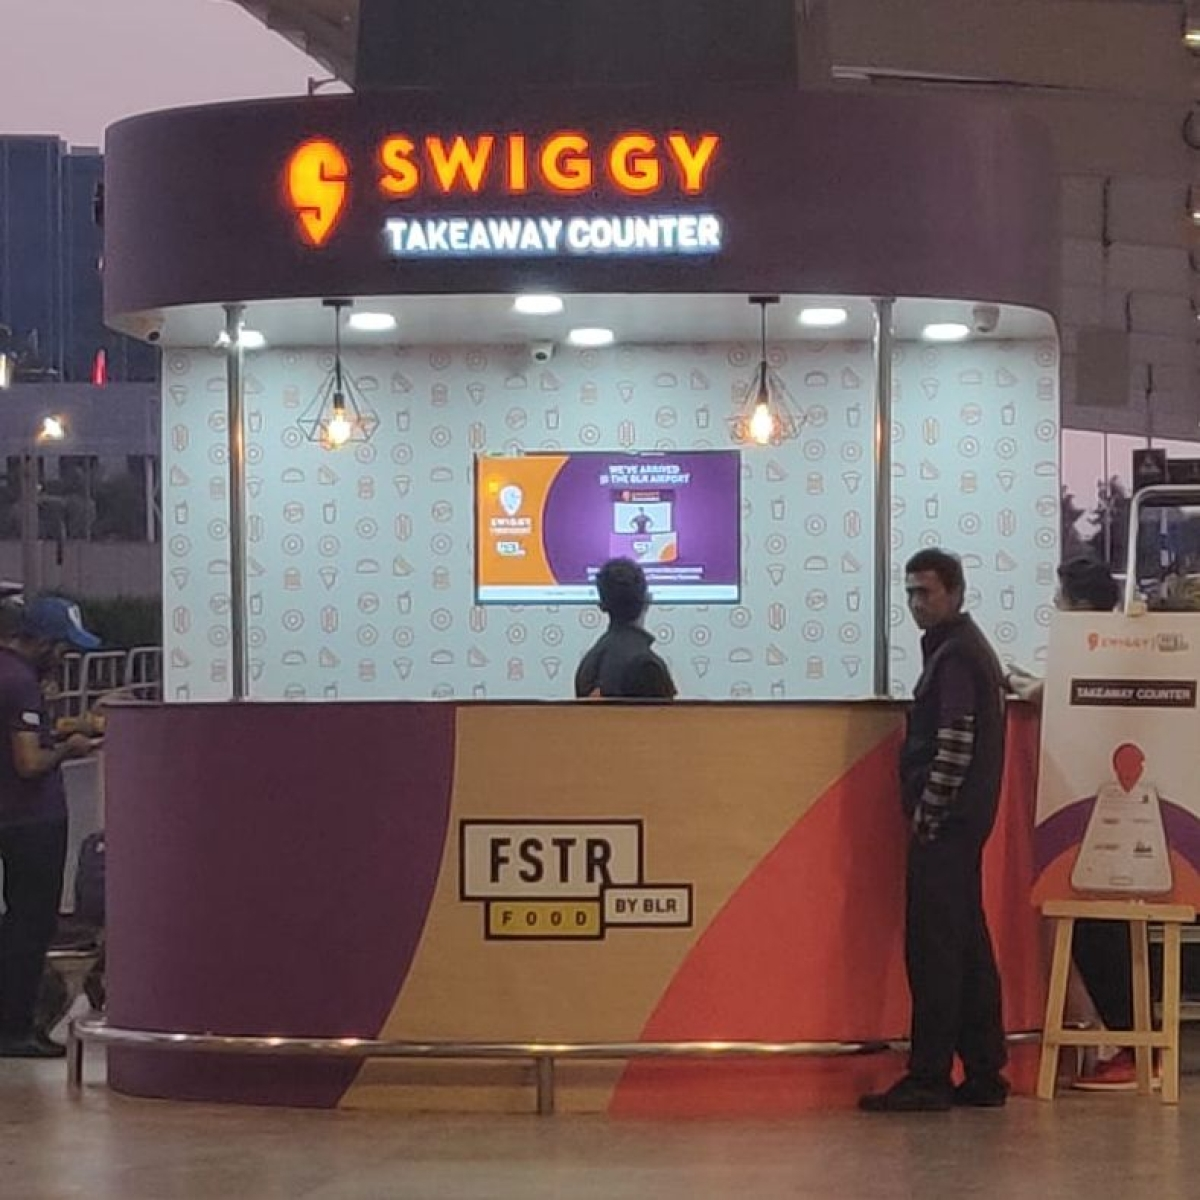 The Swiggy counter at the Kempegowda International Airport Bengaluru